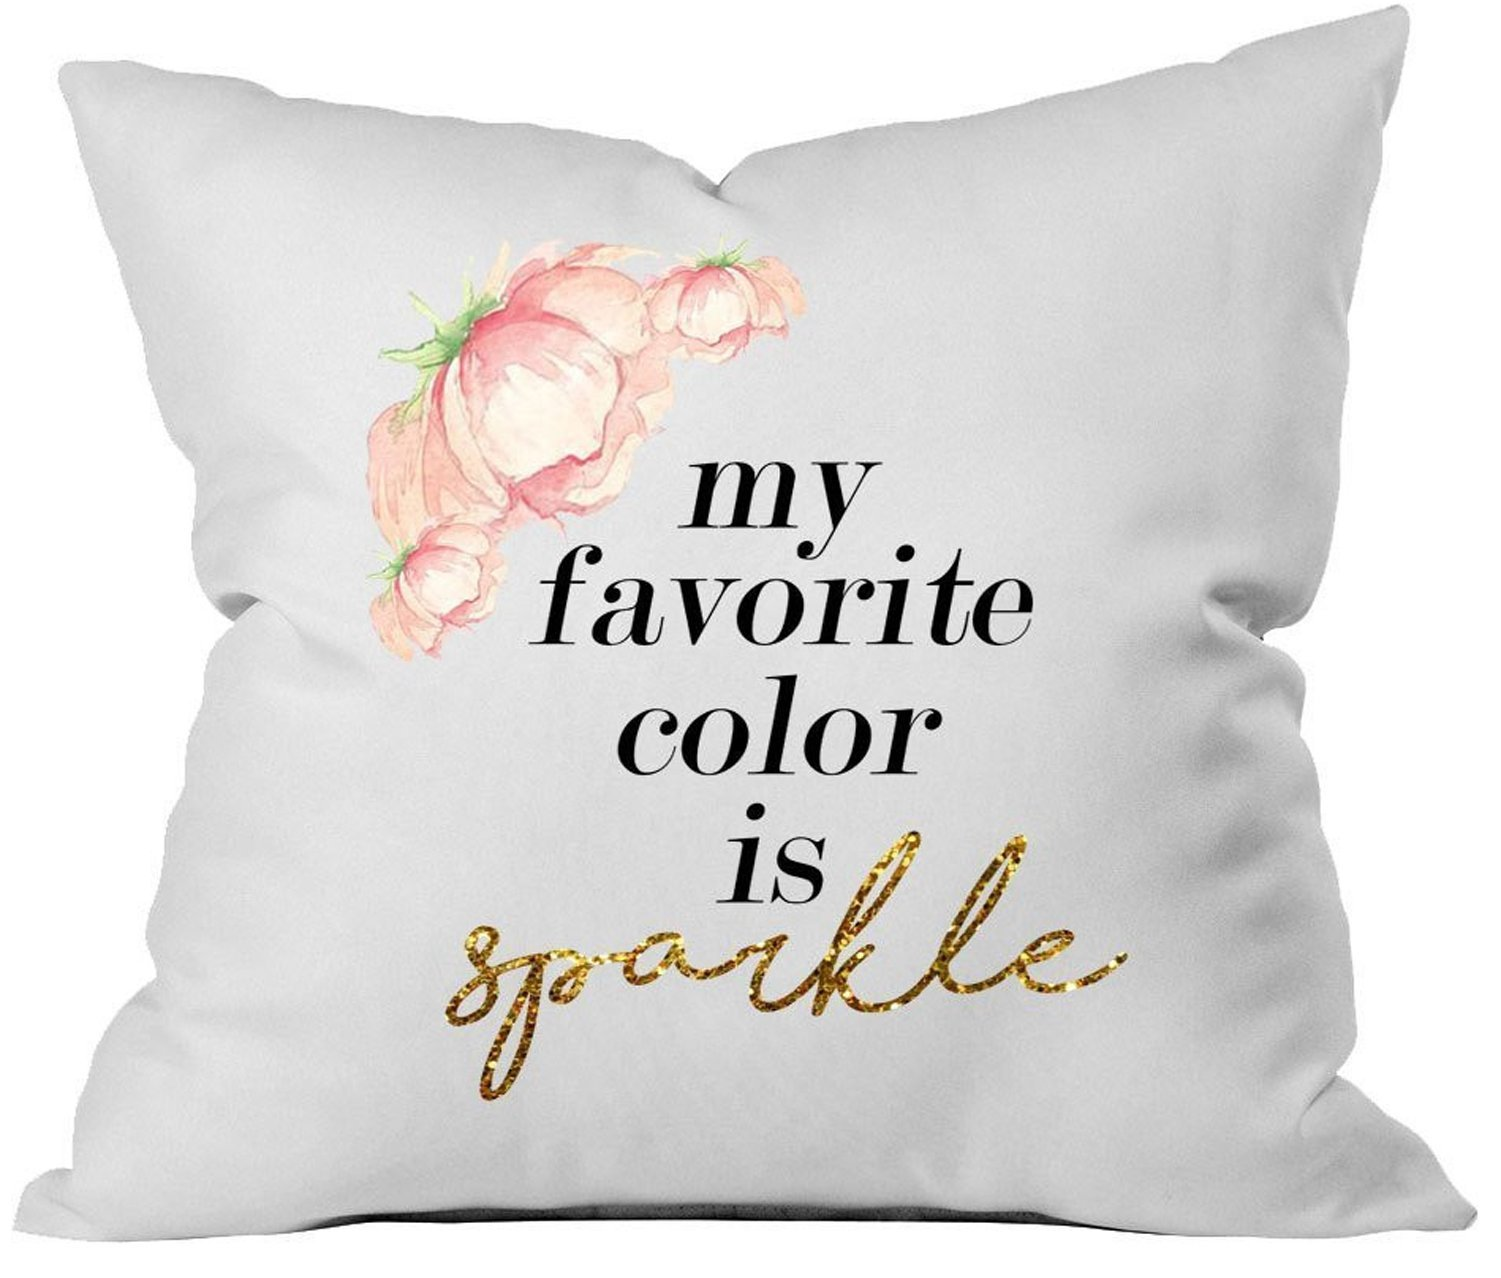 Oh, Susannah My Favorite Color Is Sparkle 18x18 Inch Throw Pillow Cover Valentines Day Gifts for Her Home Decor